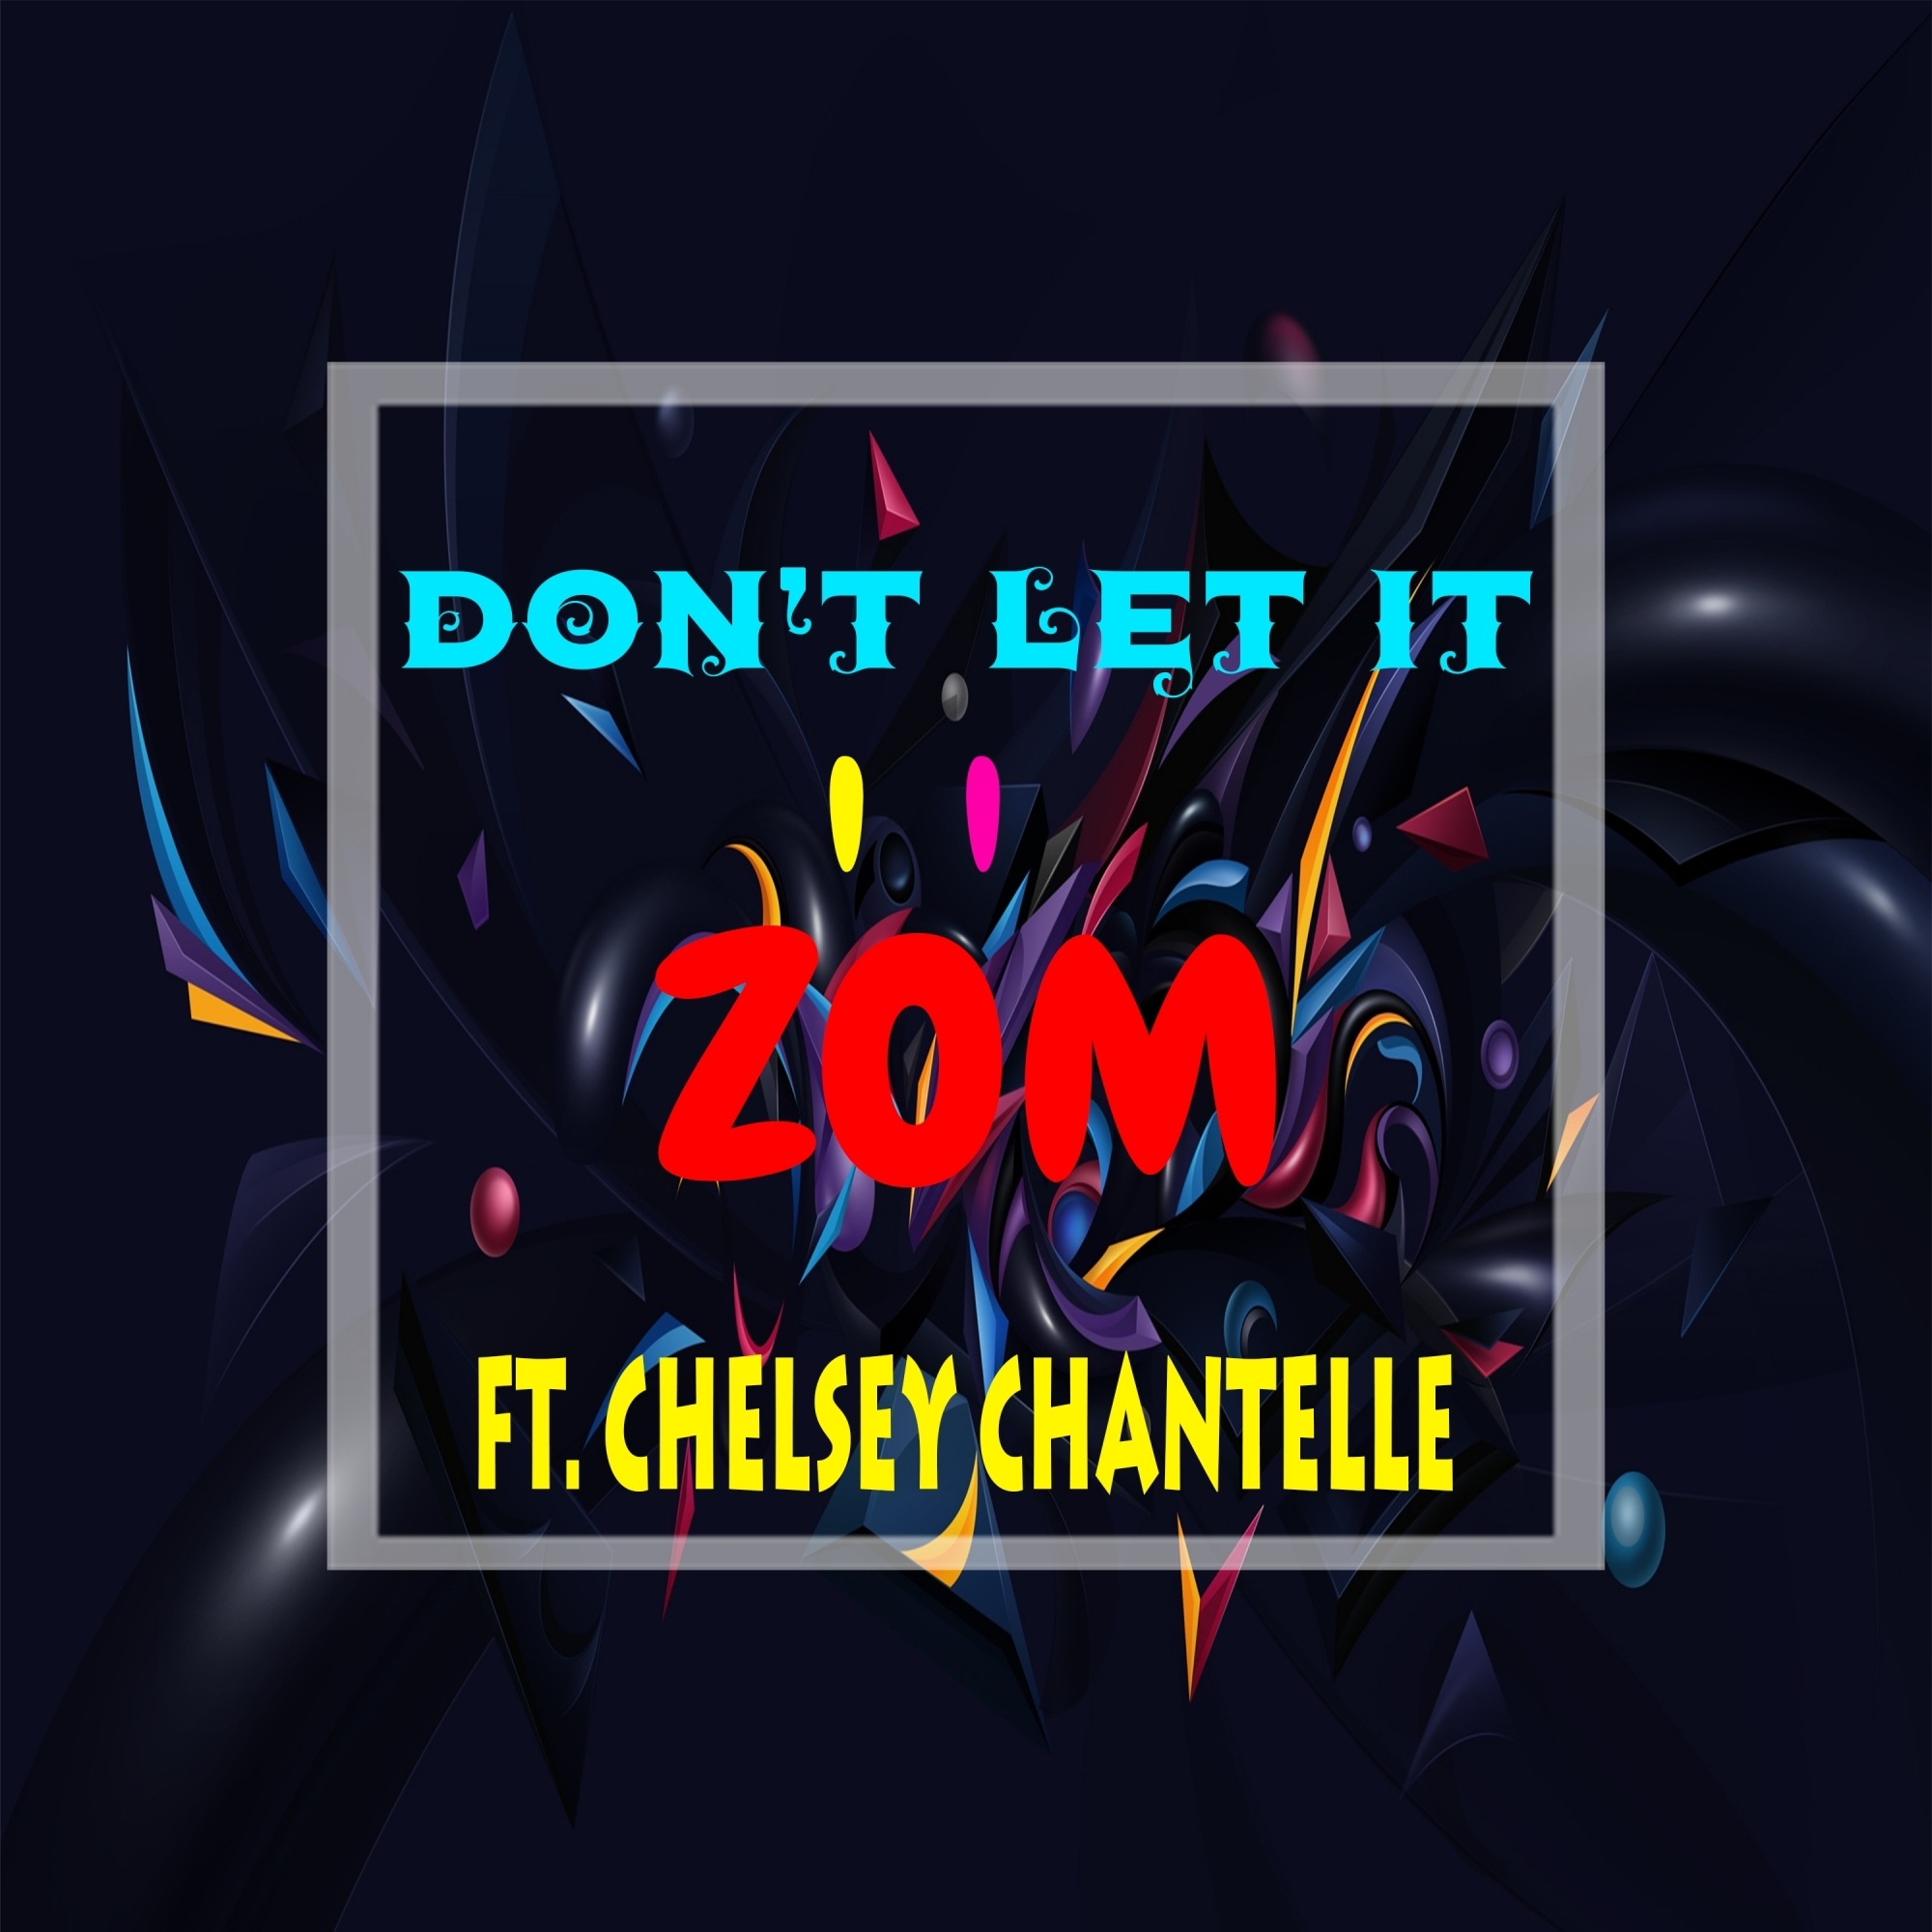 Don't Let It (feat. Chelsey Chantelle) - Single